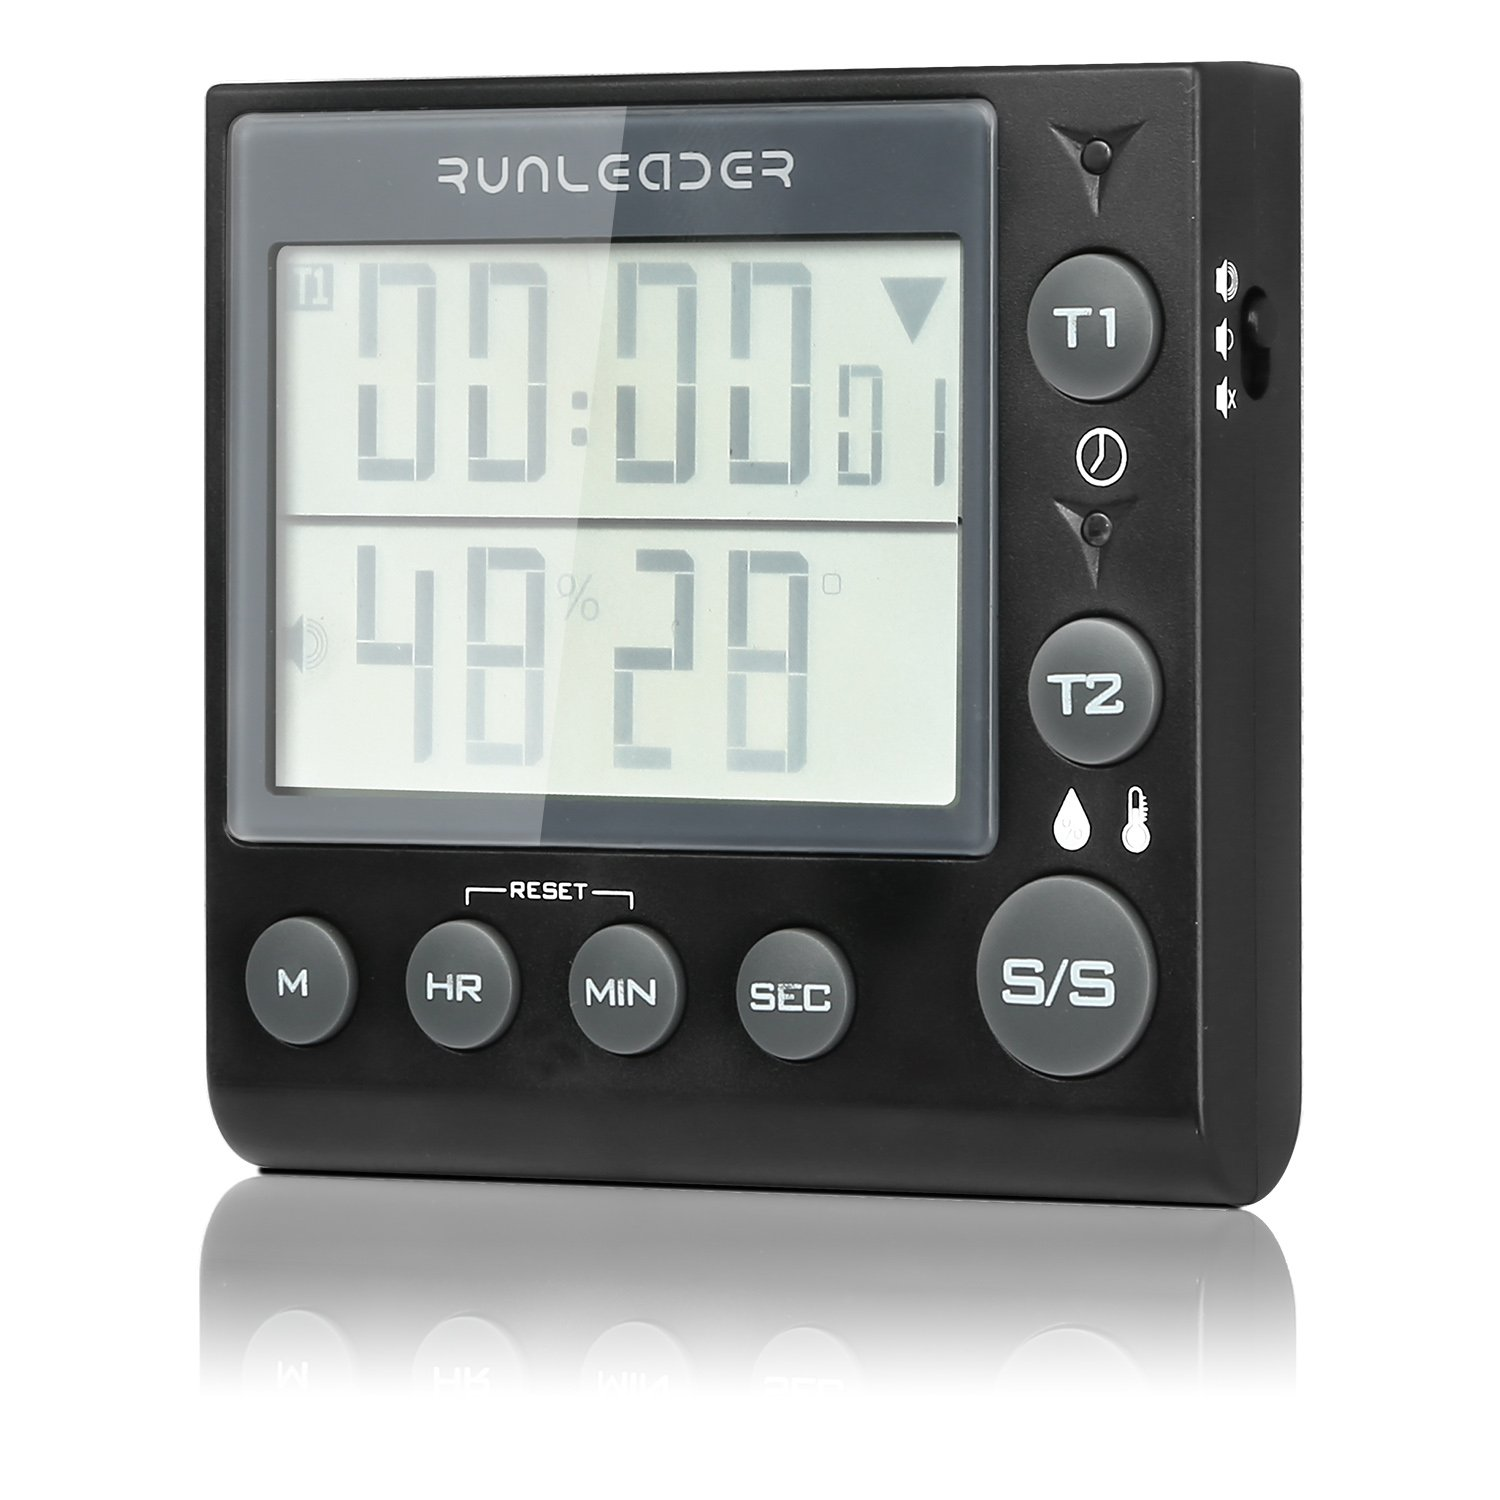 THYMY Digital Kitchen Timer Clock with Large LCD Loud Alarm Magnetic Suction Temperture and Humditity Display Memory Function Vertical Support for Cooking Backing Games Exercise Office